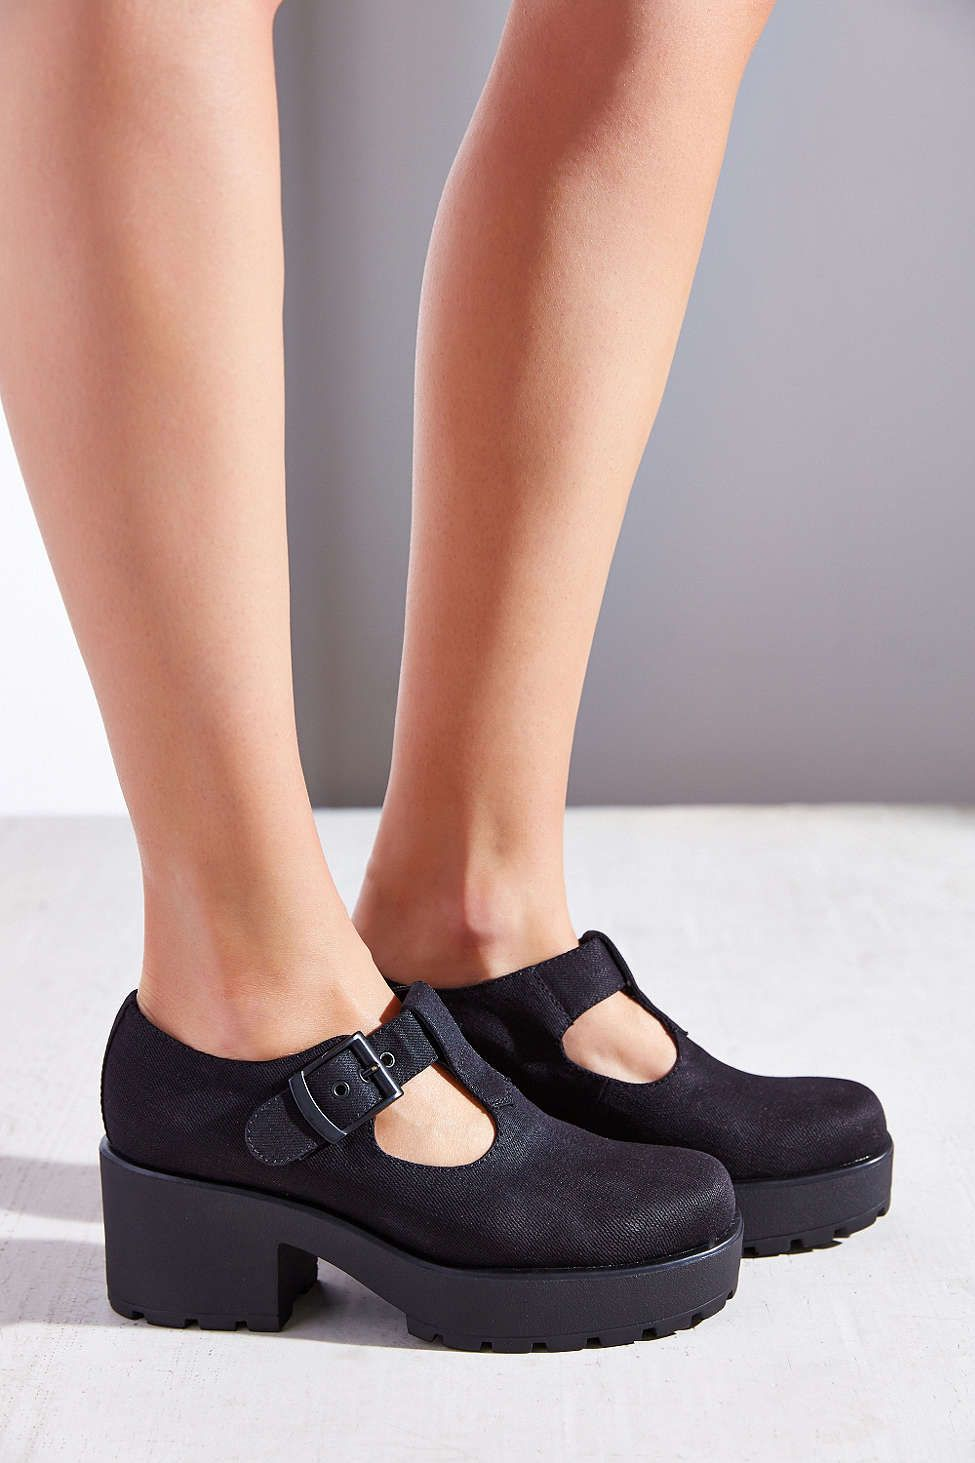 f2dcec2069f Vagabond Dioon Canvas T-Strap Heel - Urban Outfitters | My Style ...